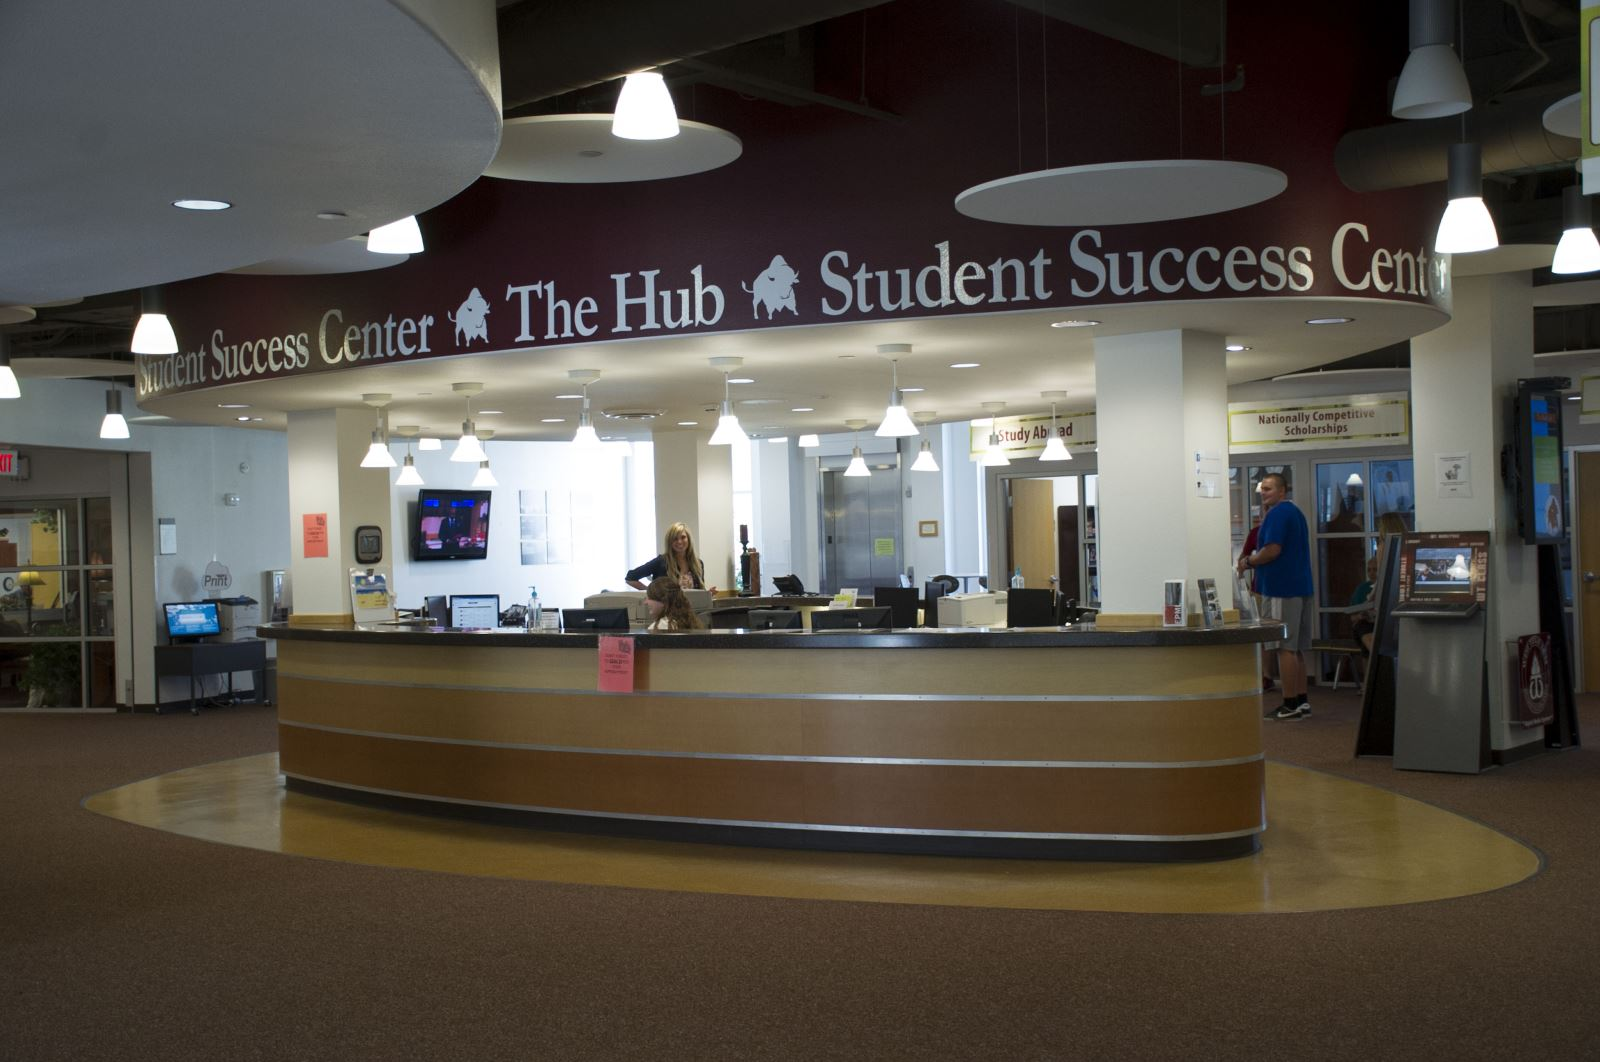 West Texas A&M University: Student Success Center